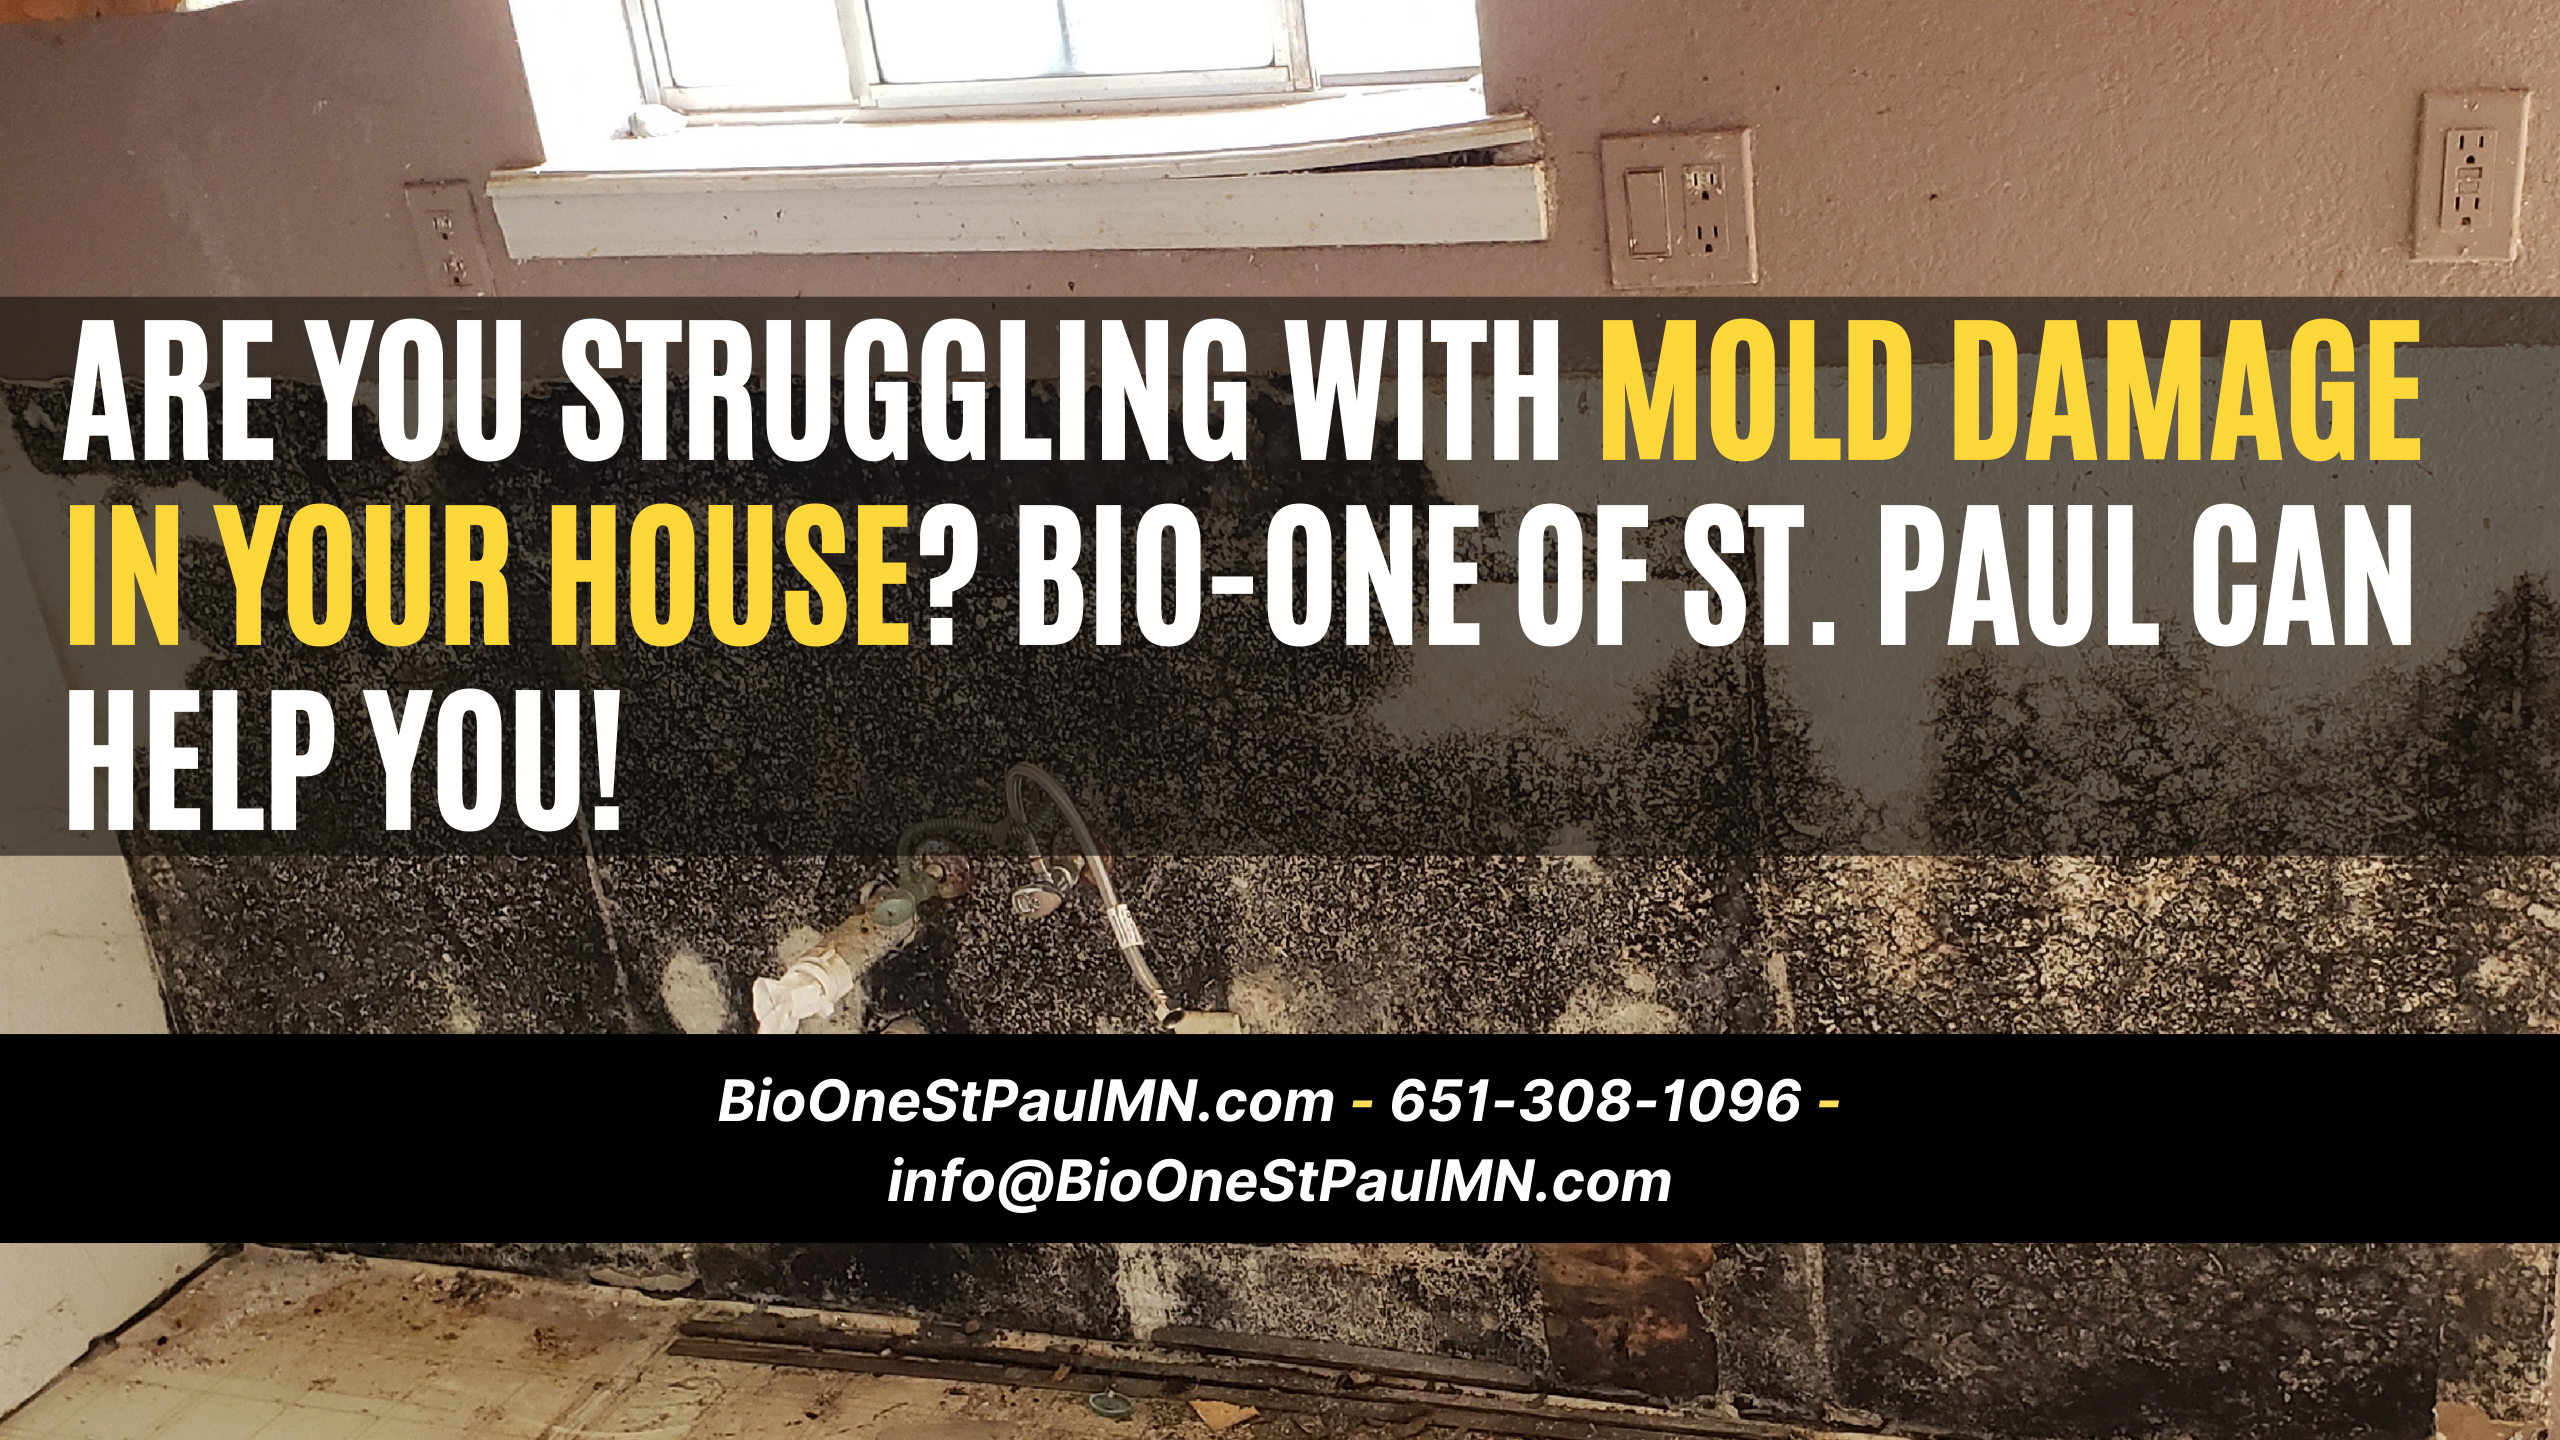 Are you struggling with mold damage in your house? Bio-One of St. Paul can help you!